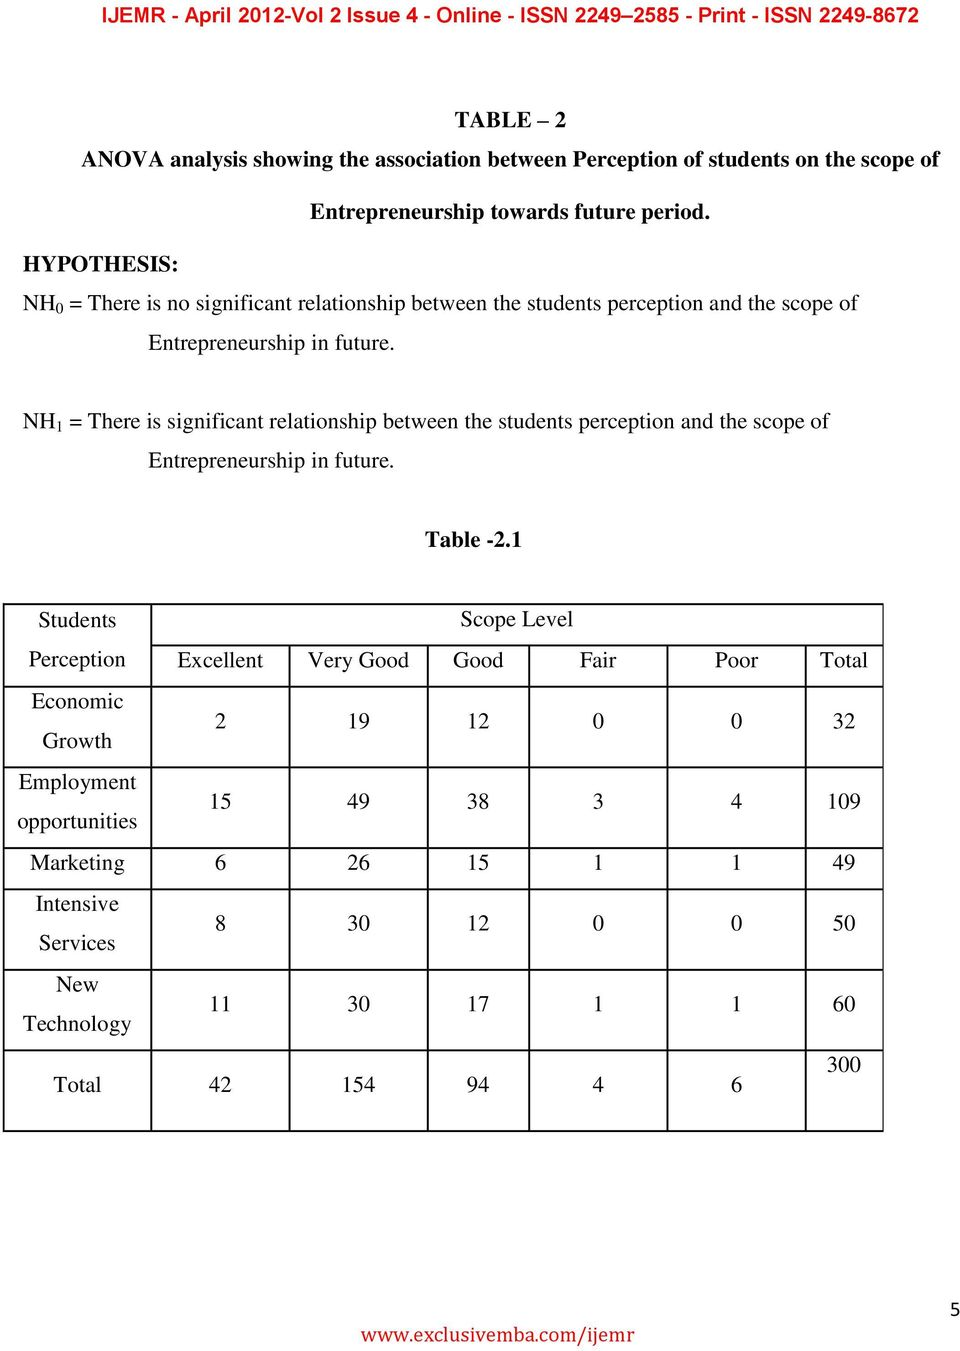 NH 1 = There is significant relationship between the students perception and the scope of Entrepreneurship in future. Table -2.